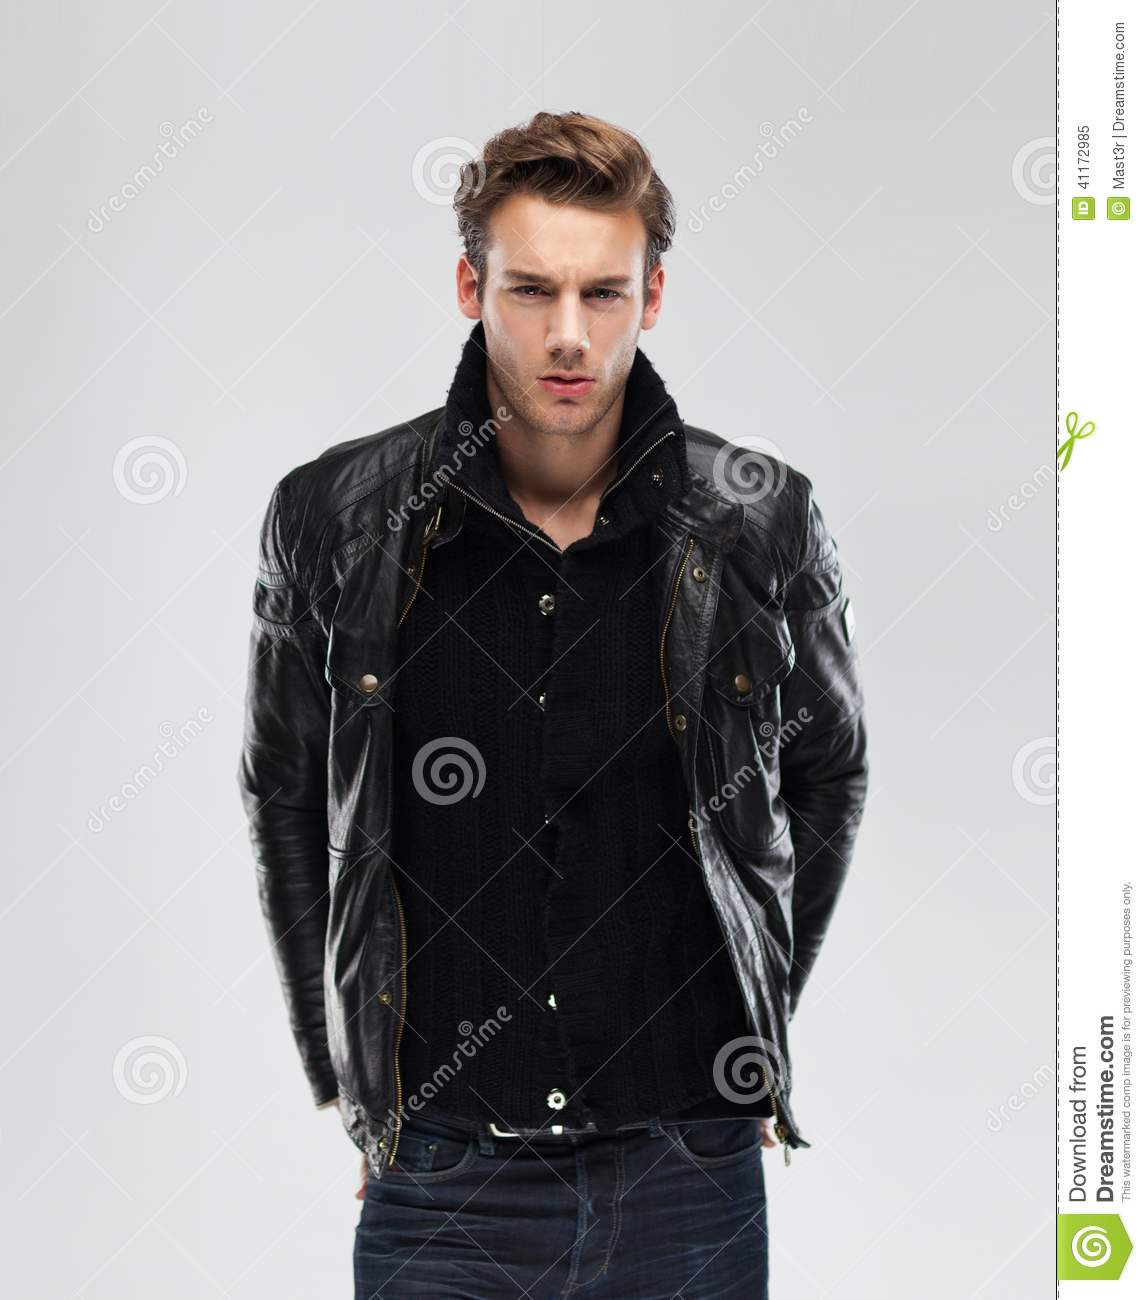 Fashion Man, Model Leather Jacket, Gray Background Stock Photo ...